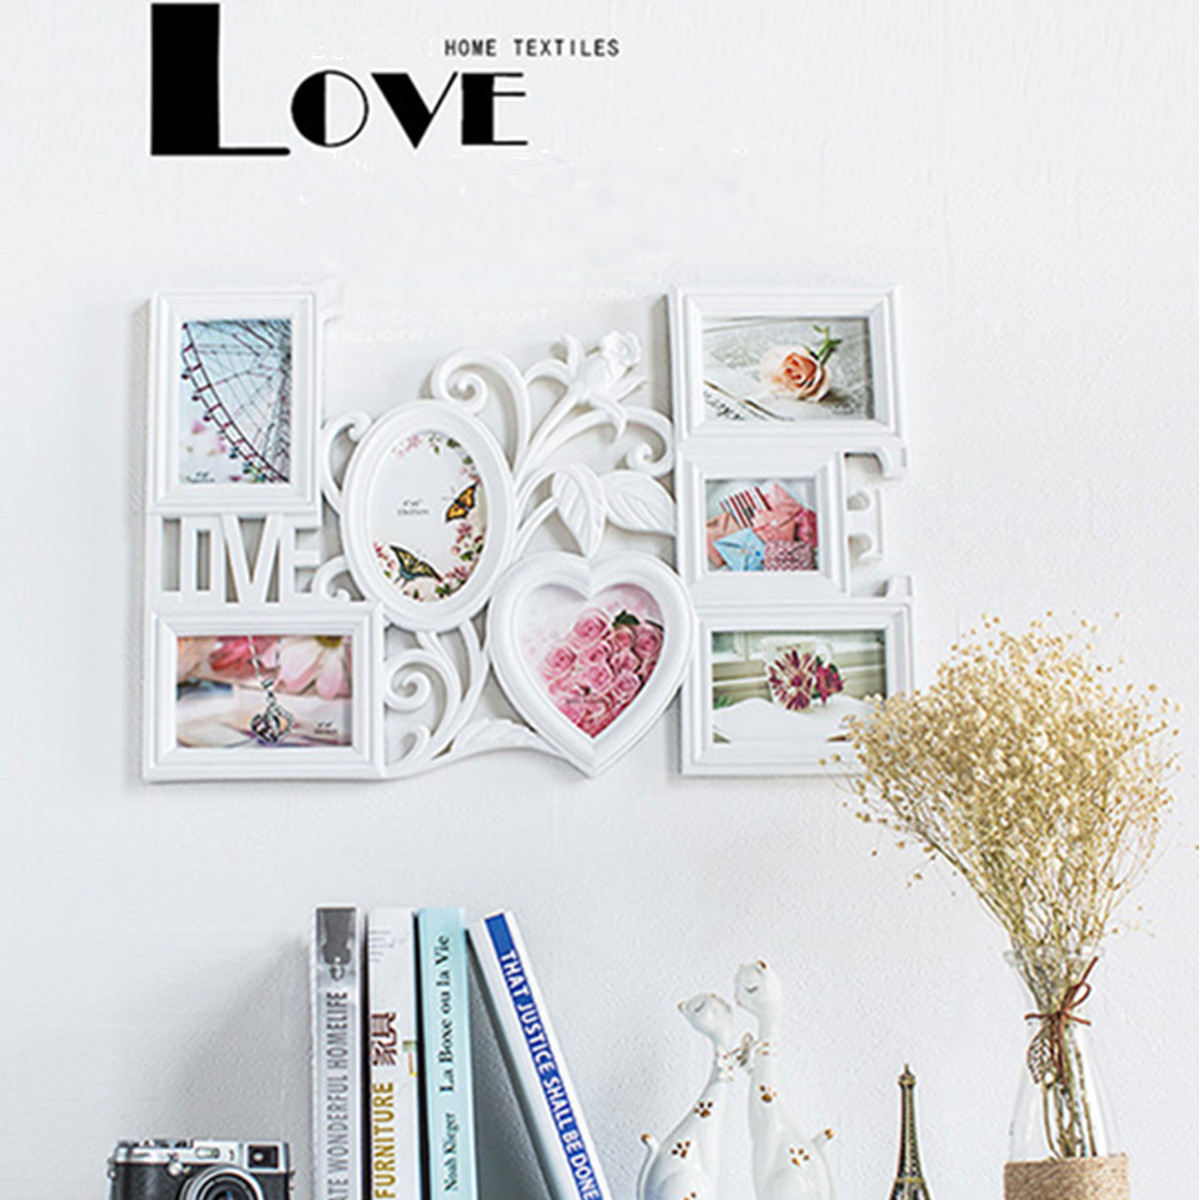 Hollow Family 3D Photo Frame White Rectangle Photo Frame Love Wall Hanging DIY Art Picture Frame Art Craft Home Decorative